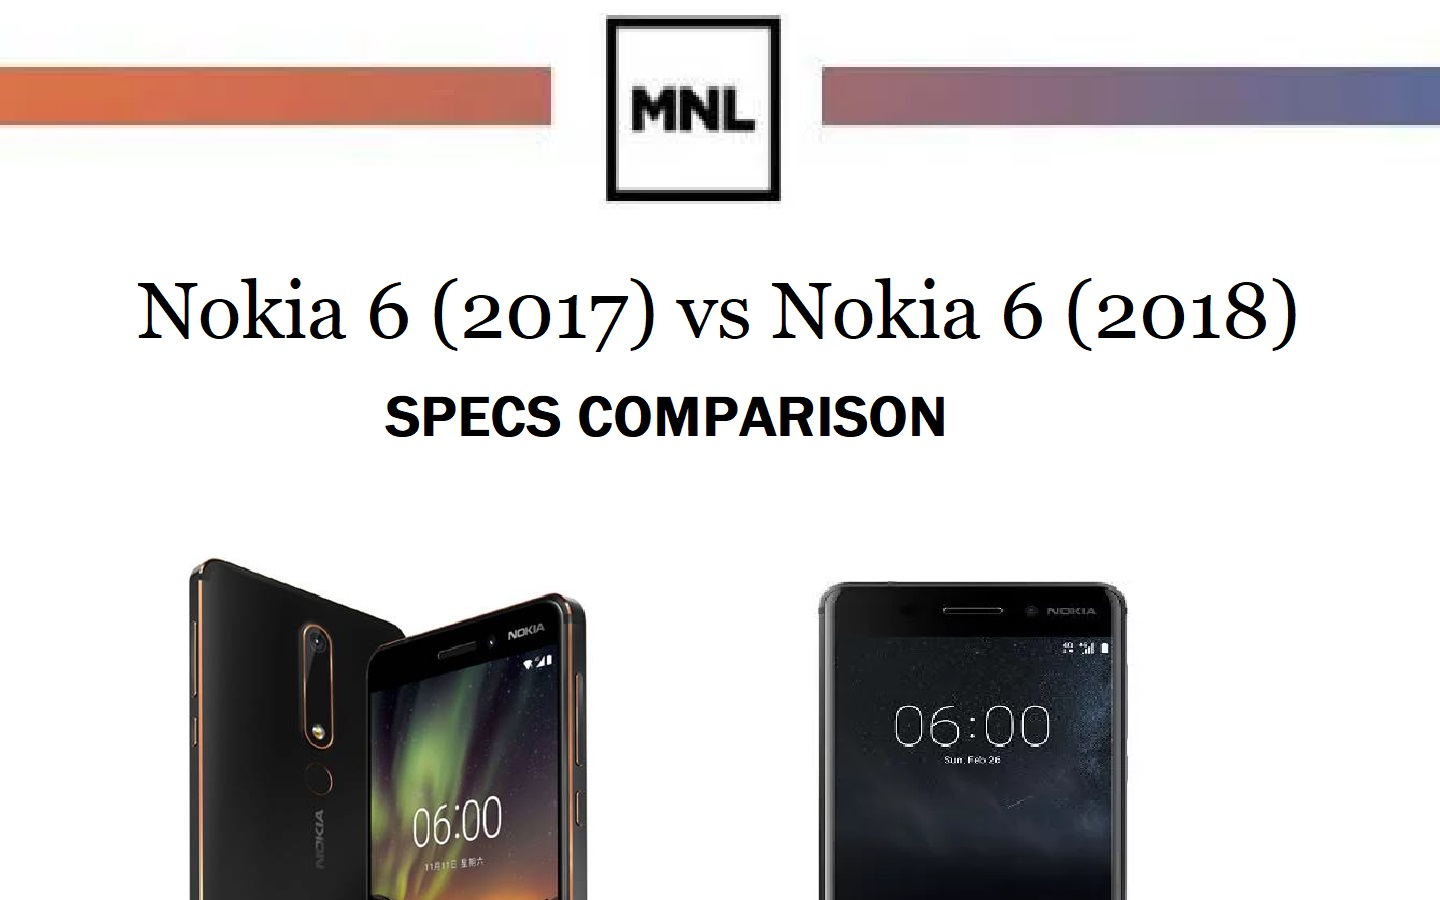 Nokia 6 2017 Vs Nokia 6 2018 Specs Comparison